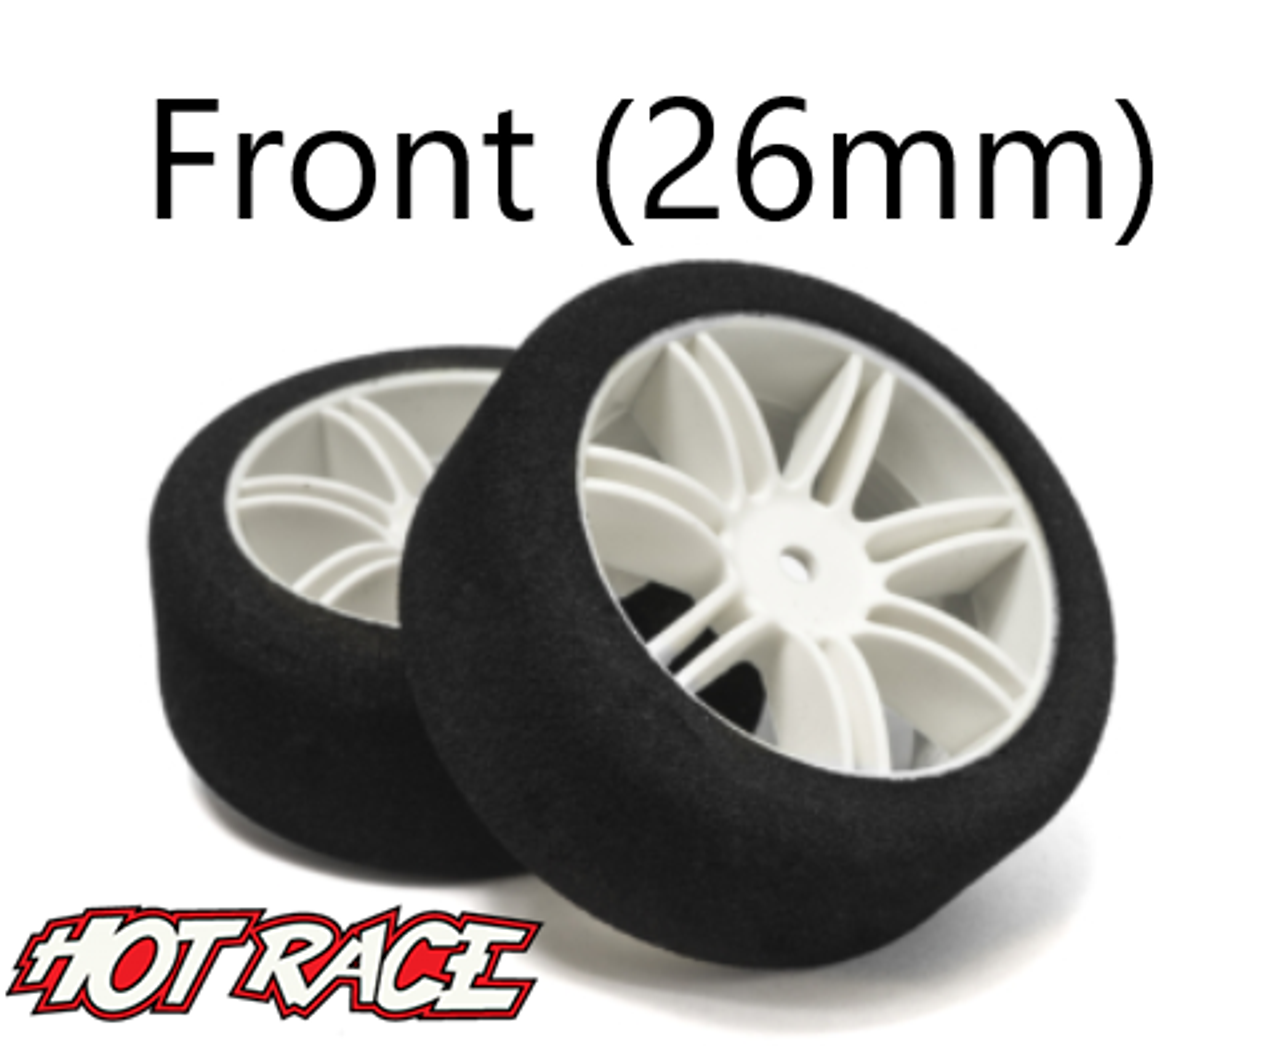 Hot Race 1:10 Front Tires - White Wheels